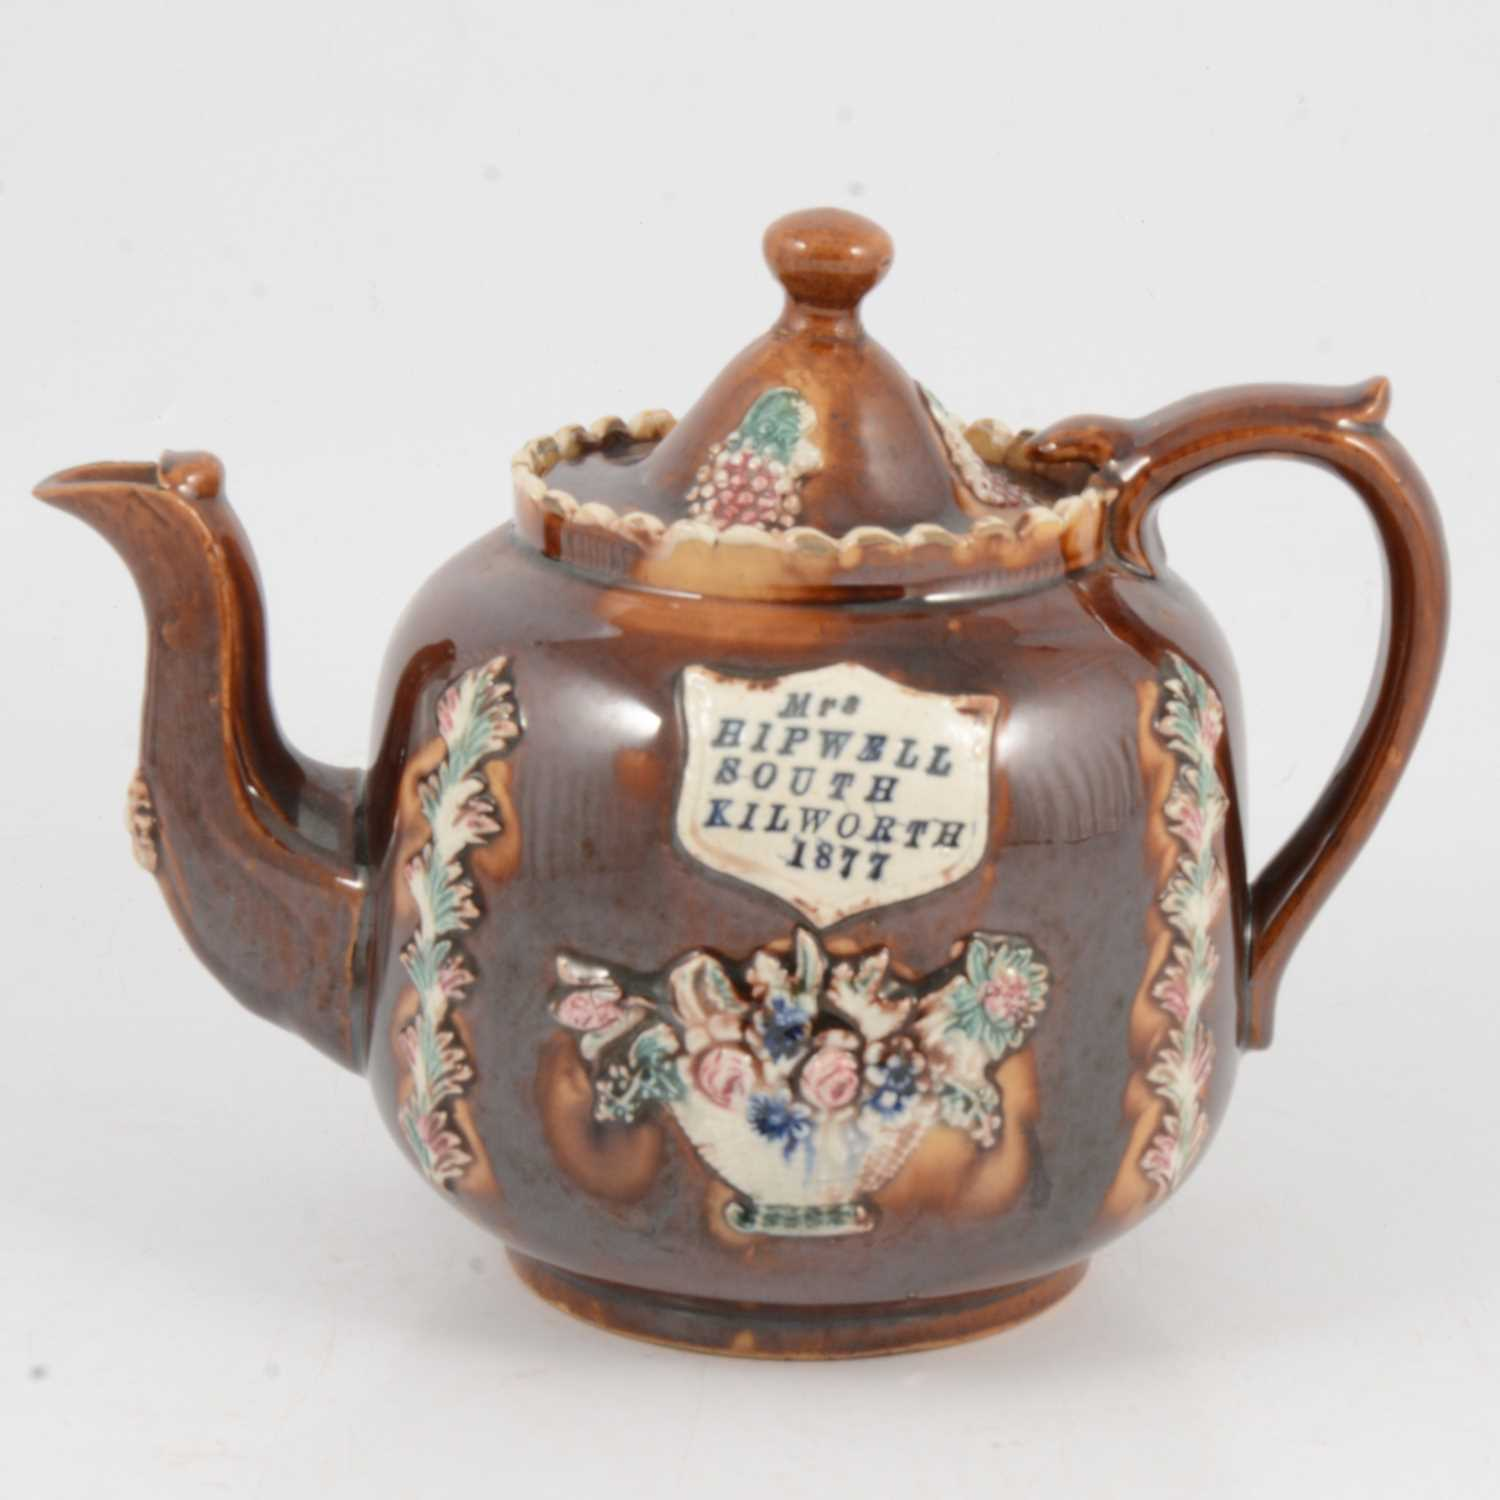 Lot 36 - A Victorian barge ware teapot